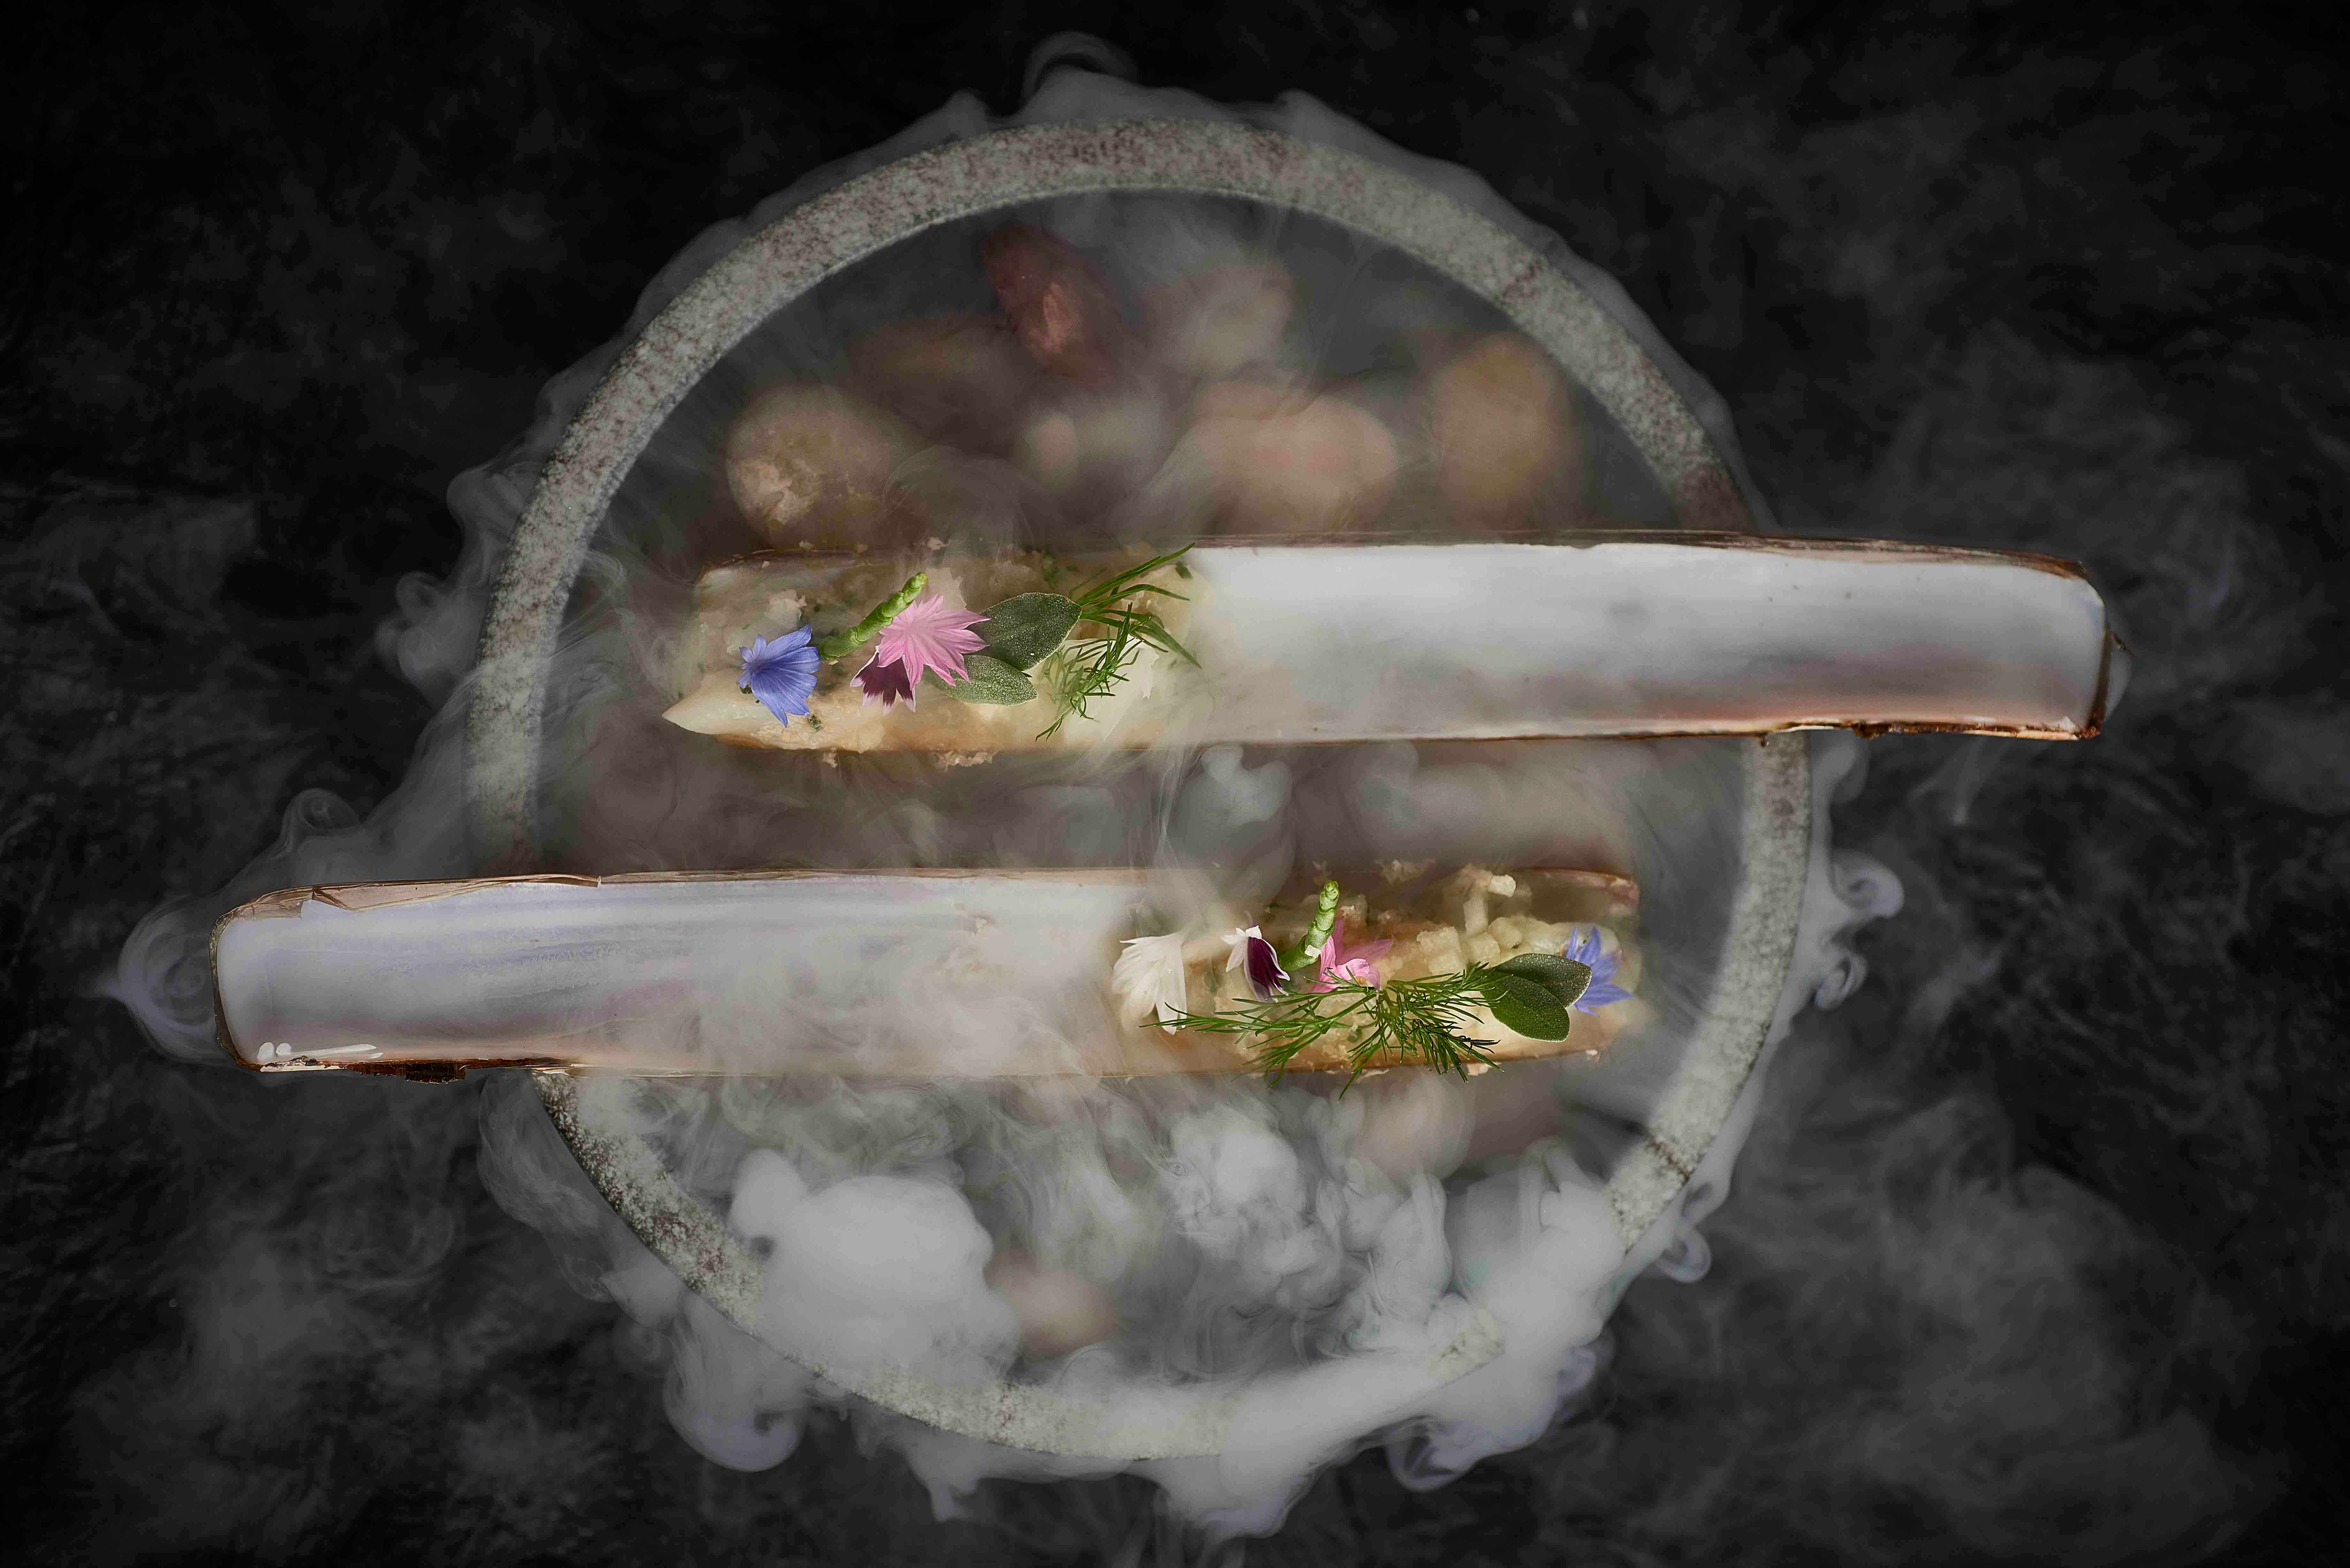 Frog by Adam Handling, Covent Garden, London: Restaurant Review